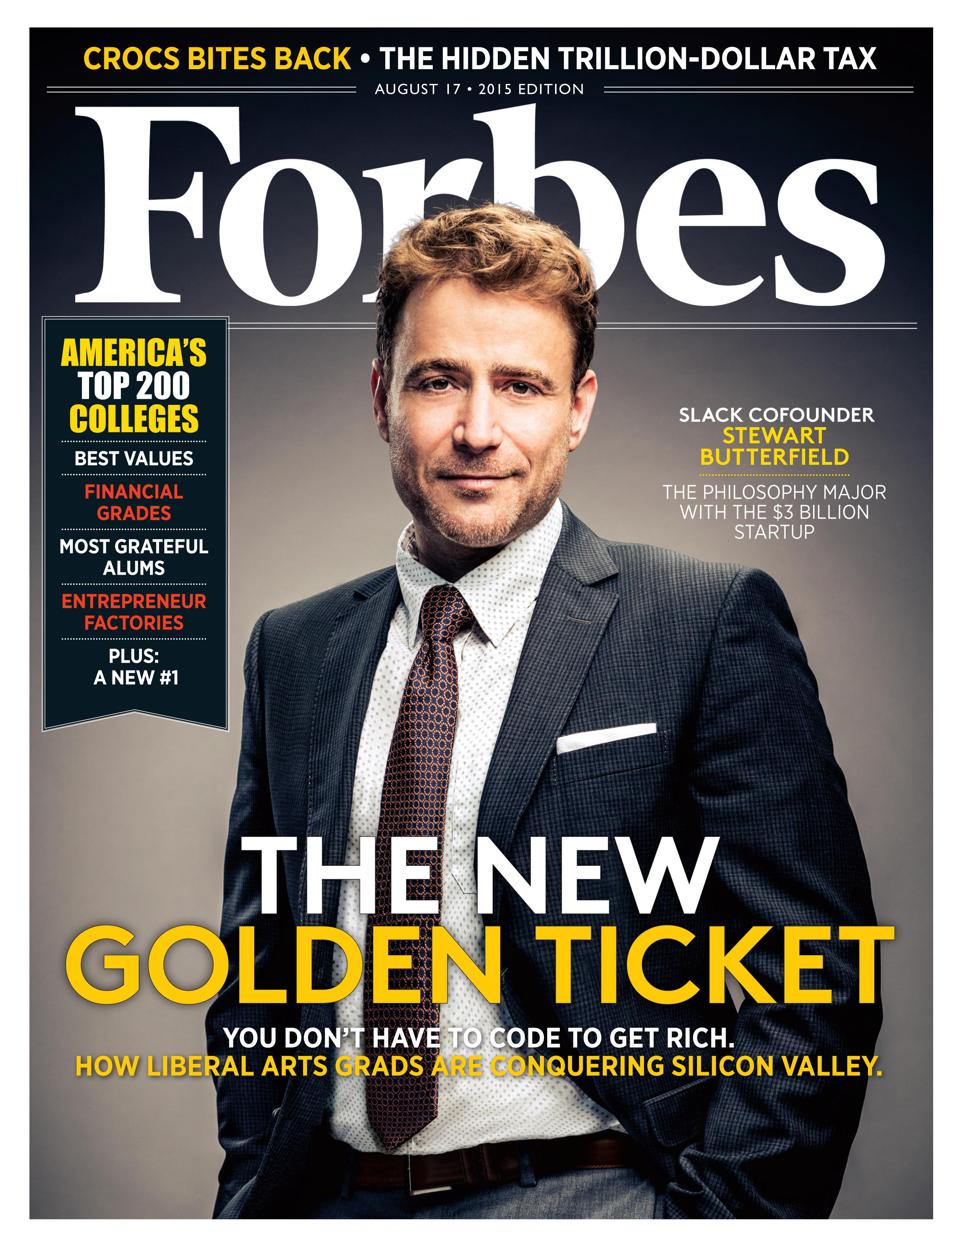 stewart butterfield forbes cover